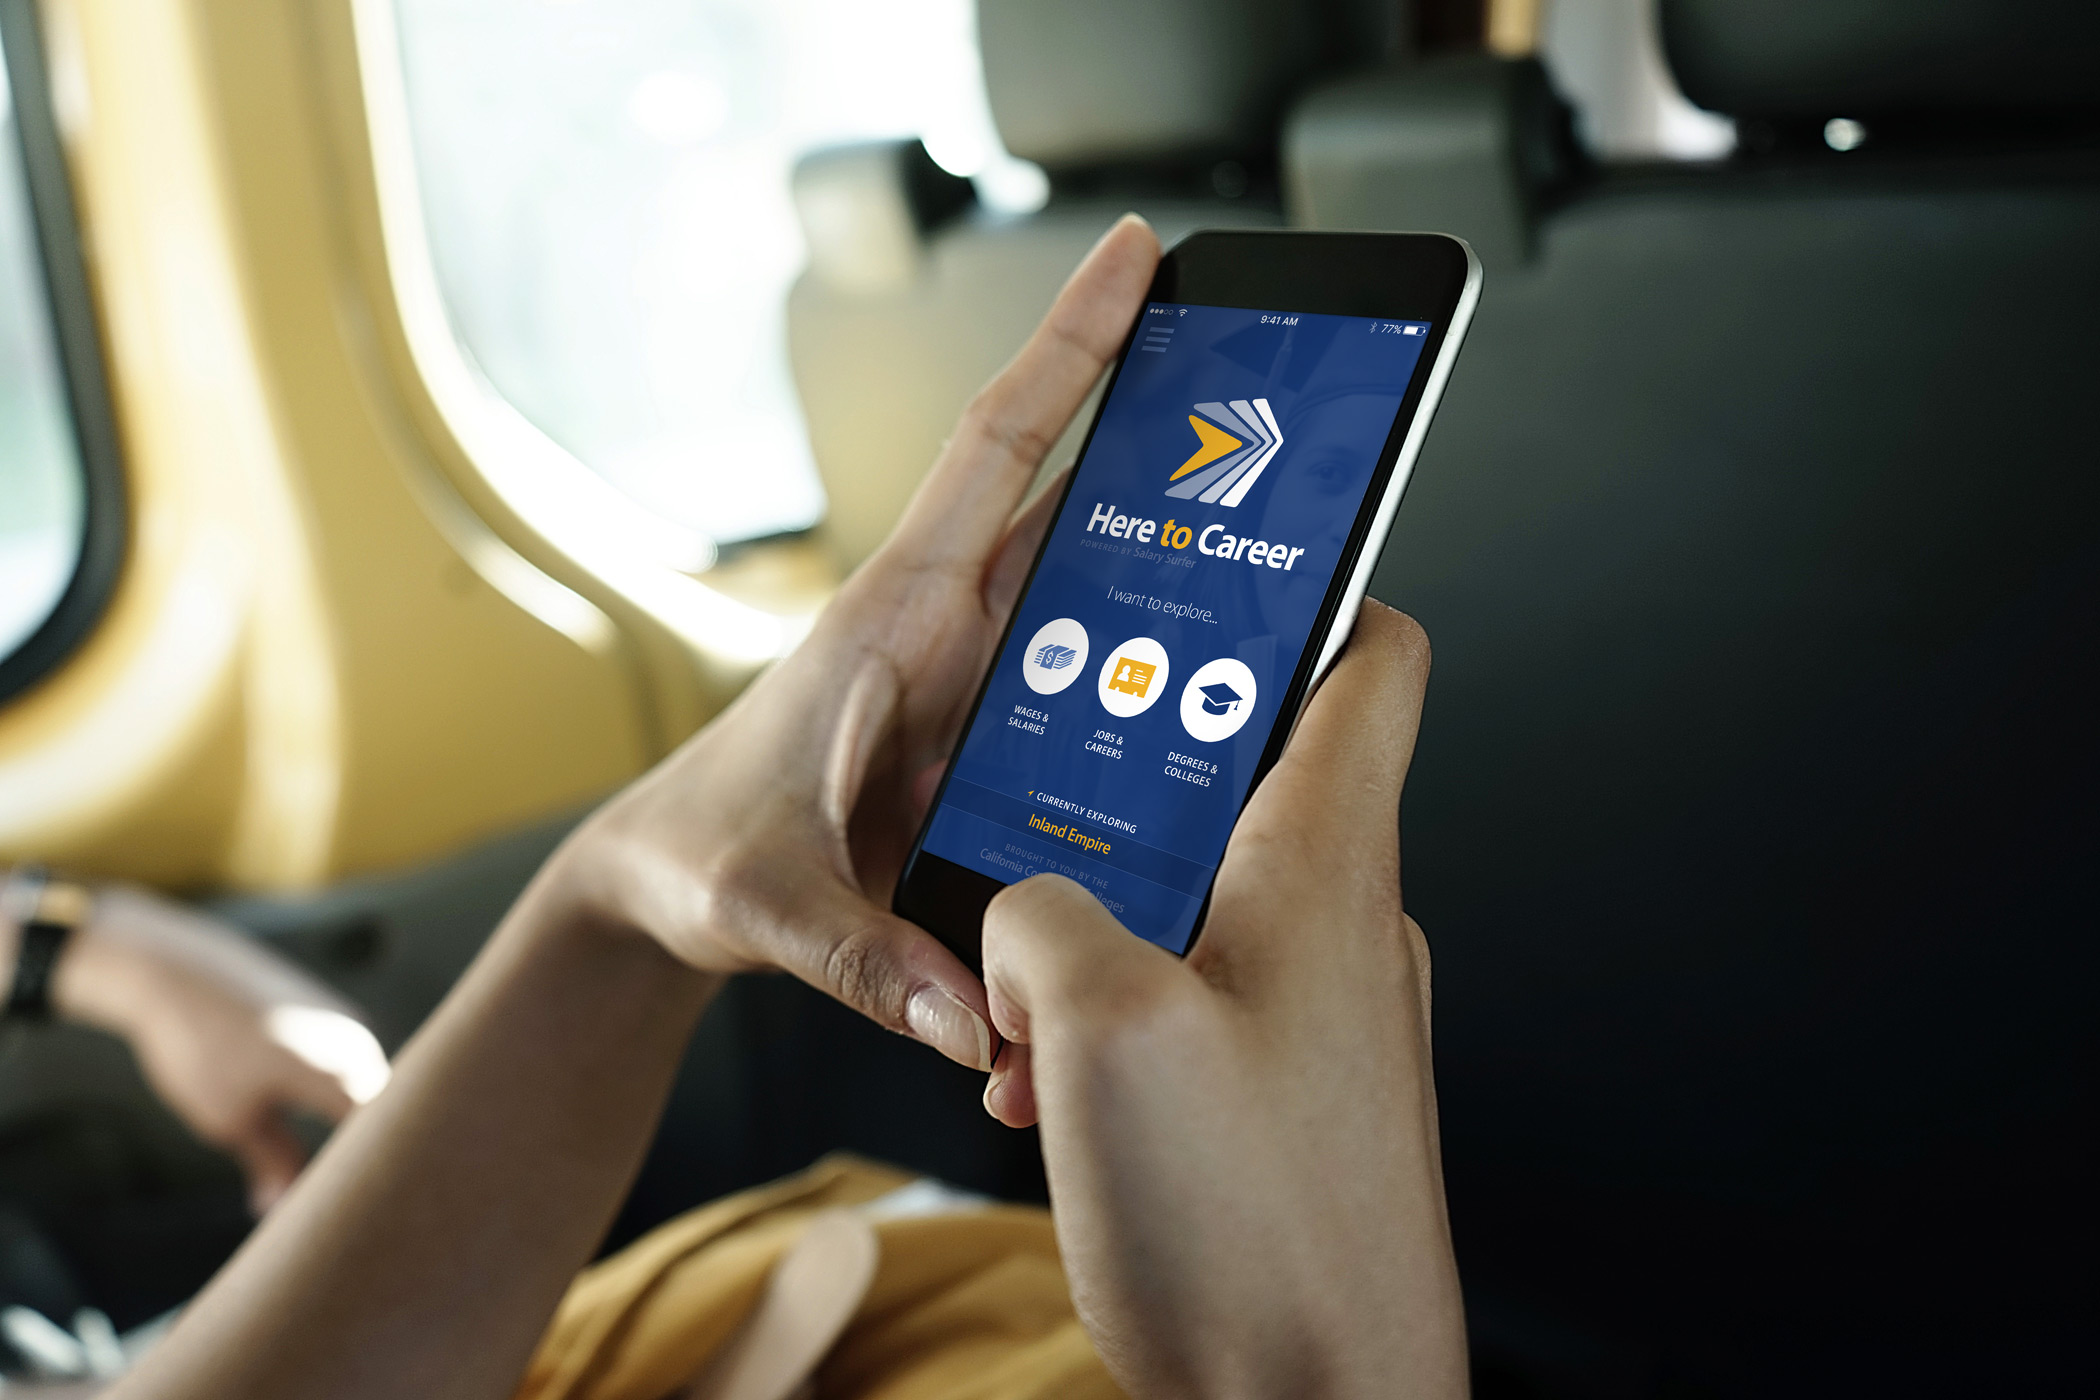 A person holding a smartphone with the Here to Career app on screen.